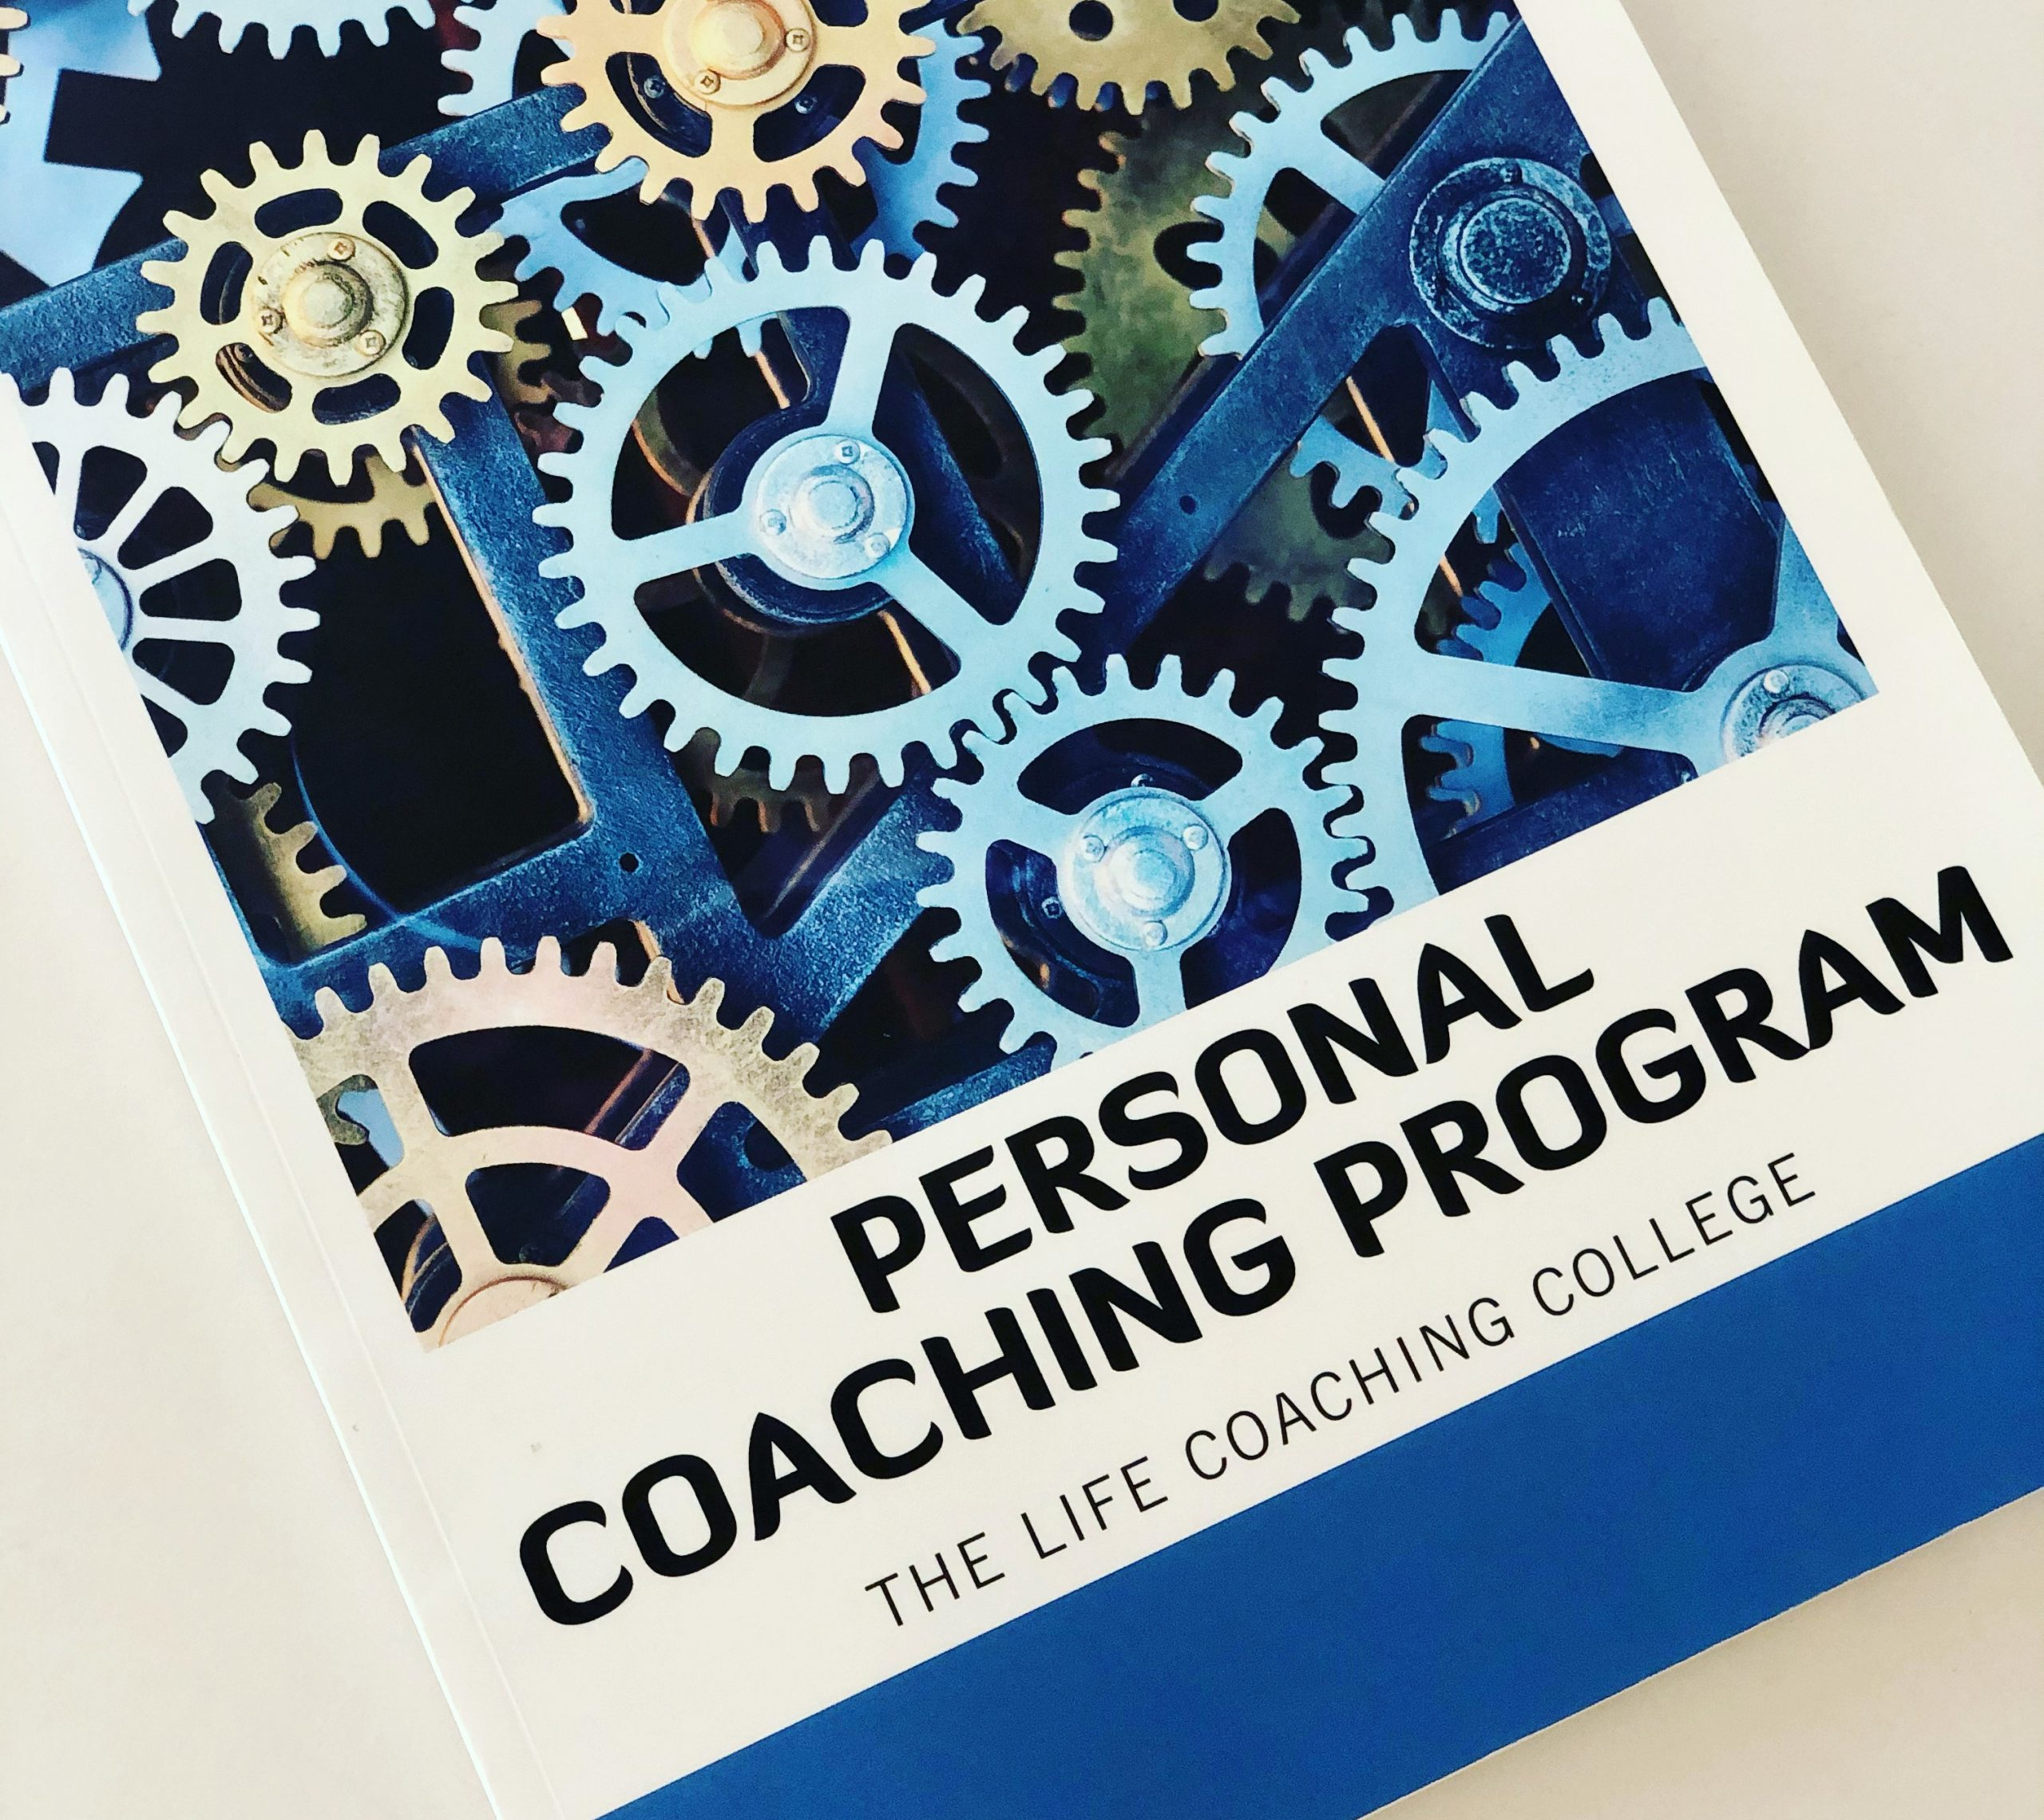 Practitioner of Coaching Course